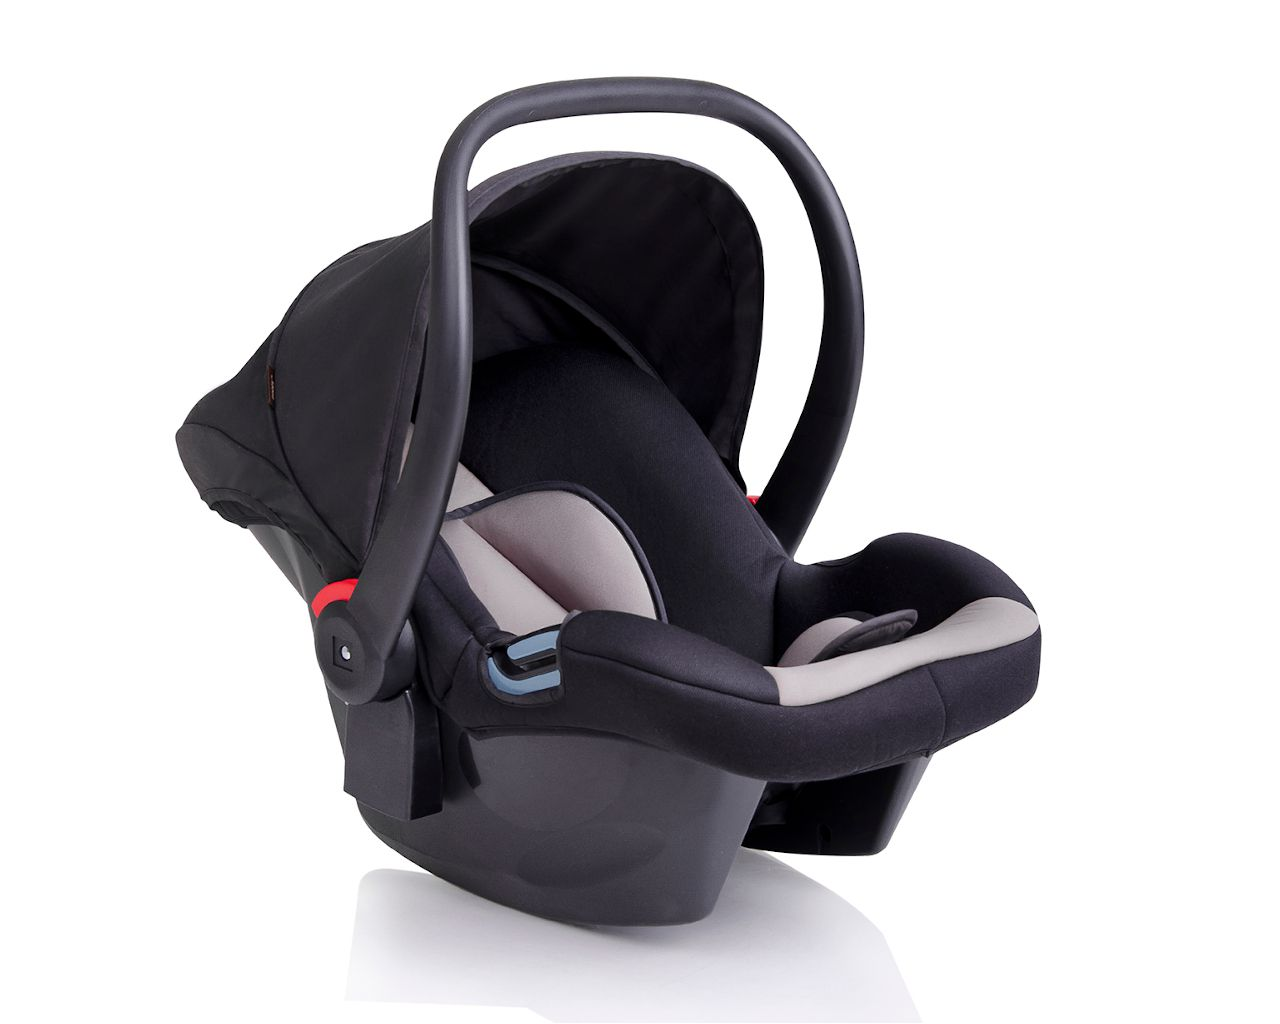 Baby Basket, Child Booster Seats - Rent a Car Crete